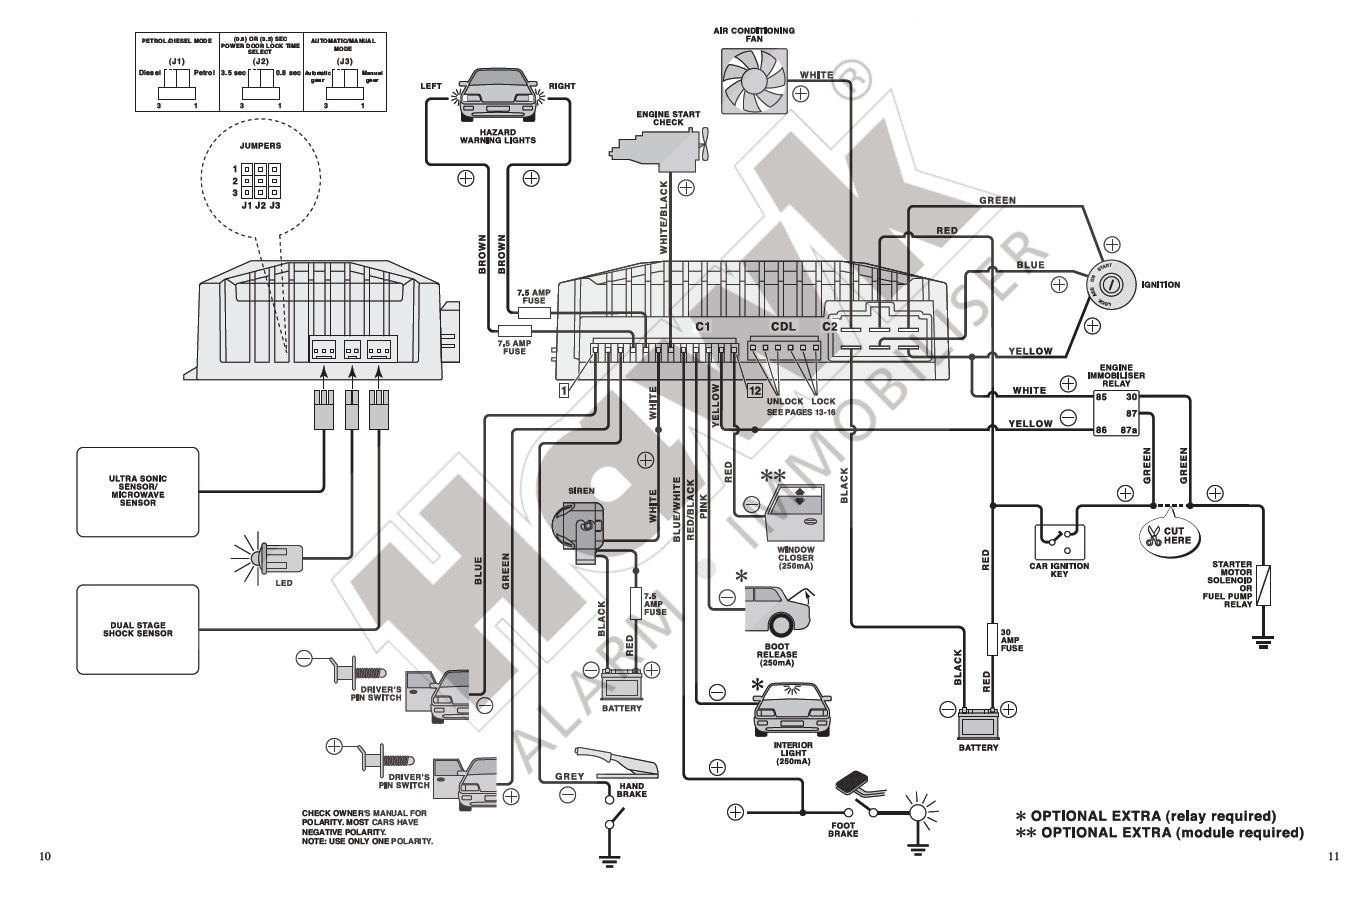 [FPWZ_2684]  SA_9417] Wiring Diagram Ford Galaxy 2002 Download Diagram | Ford Turneo Audio Wiring Uk |  | Syny Ropye Omit Ospor Greas Benkeme Mohammedshrine Librar Wiring 101